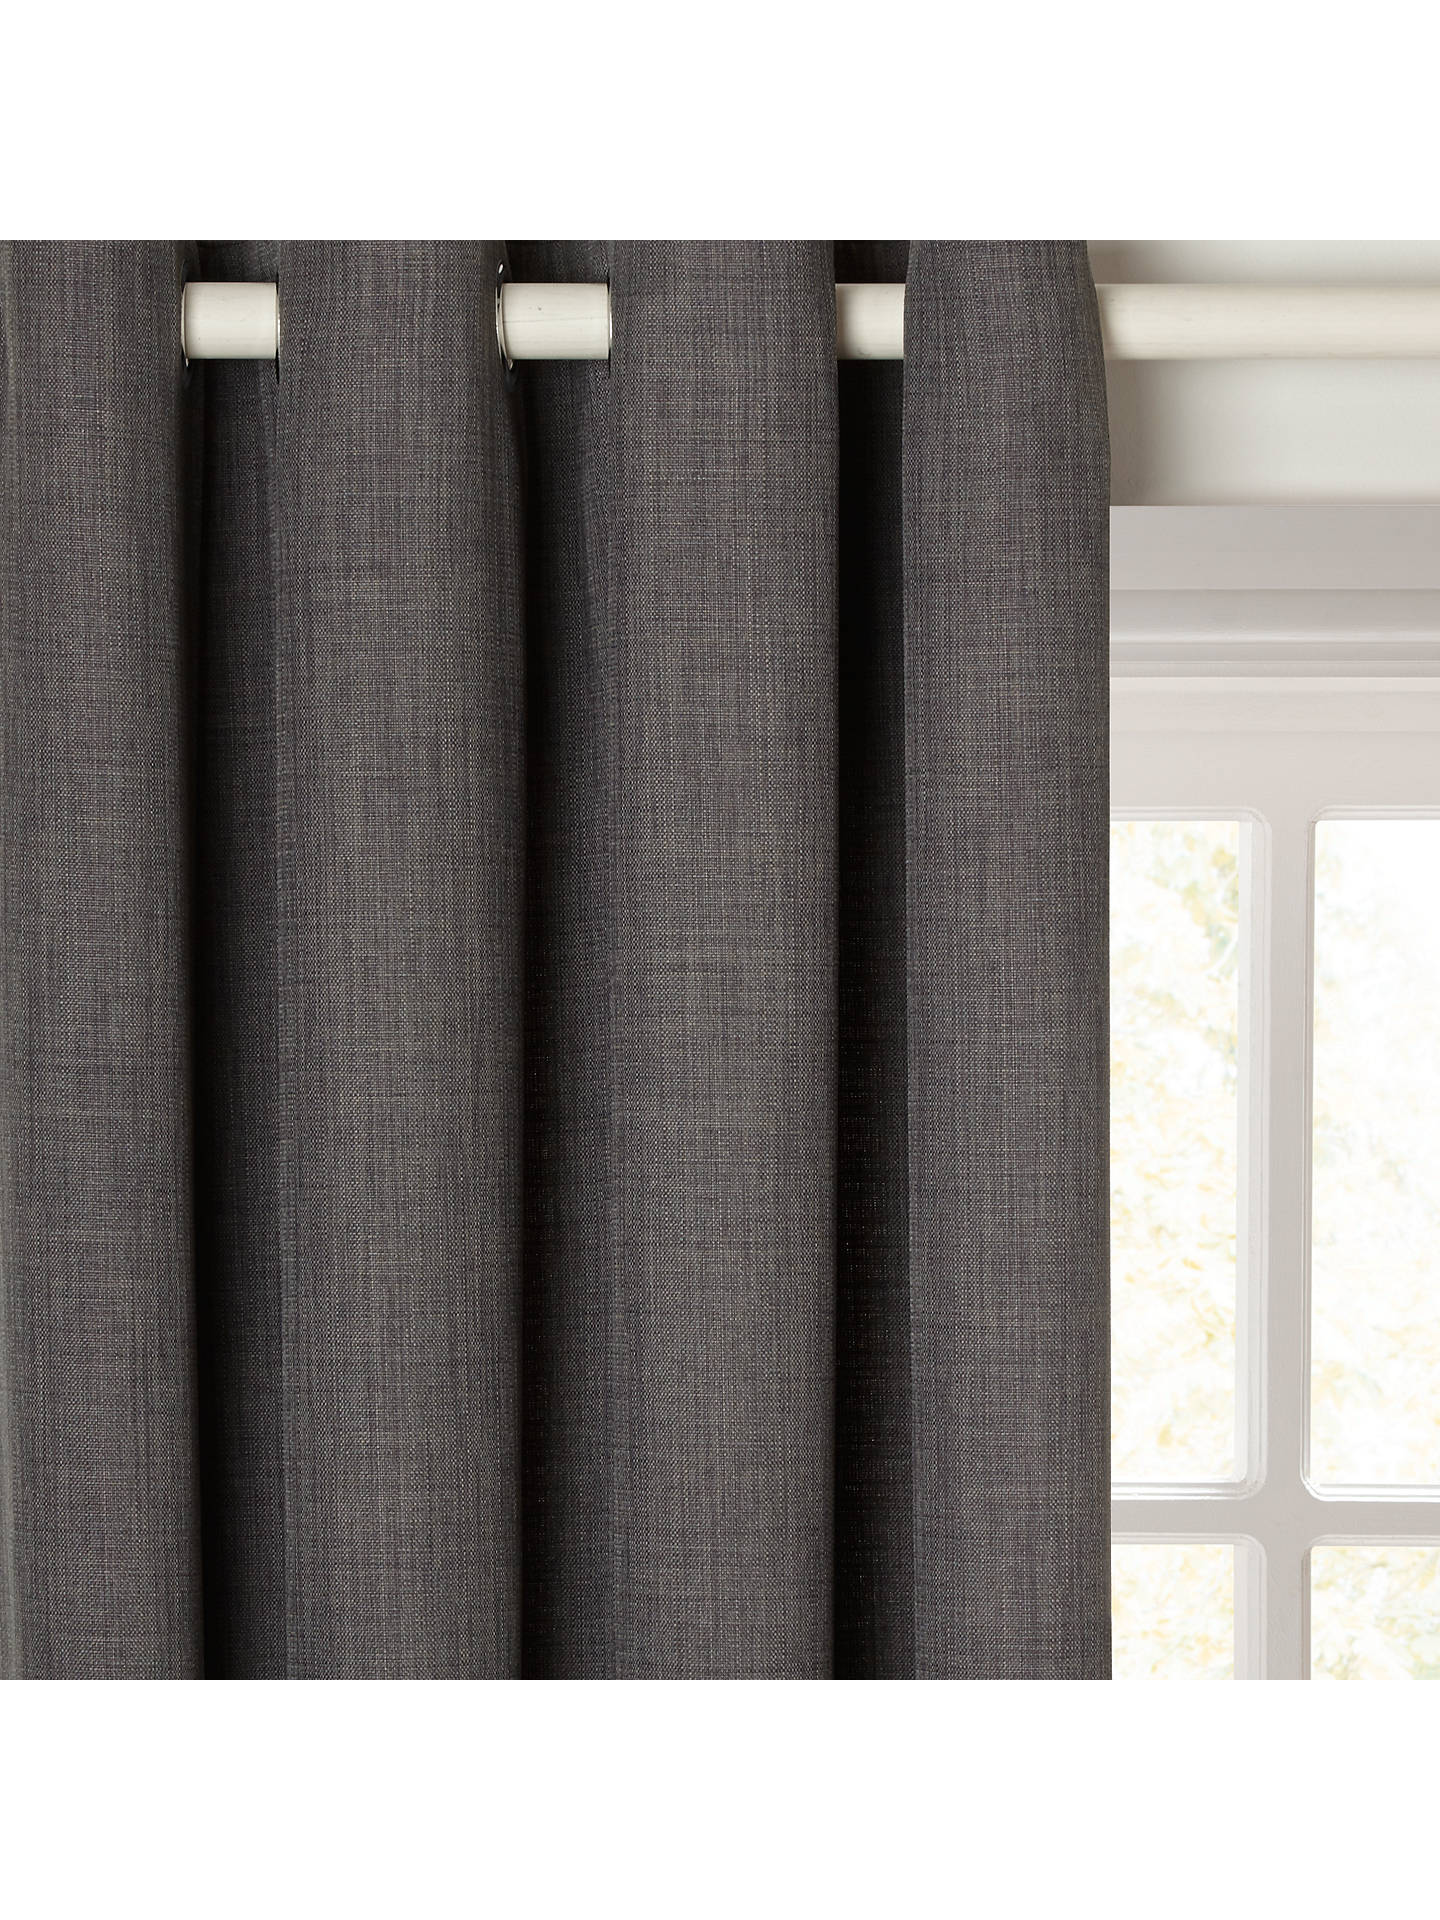 Buy John Lewis & Partners Barathea Pair Lined Eyelet Curtains, Steel, W167 x Drop 182cm Online at johnlewis.com